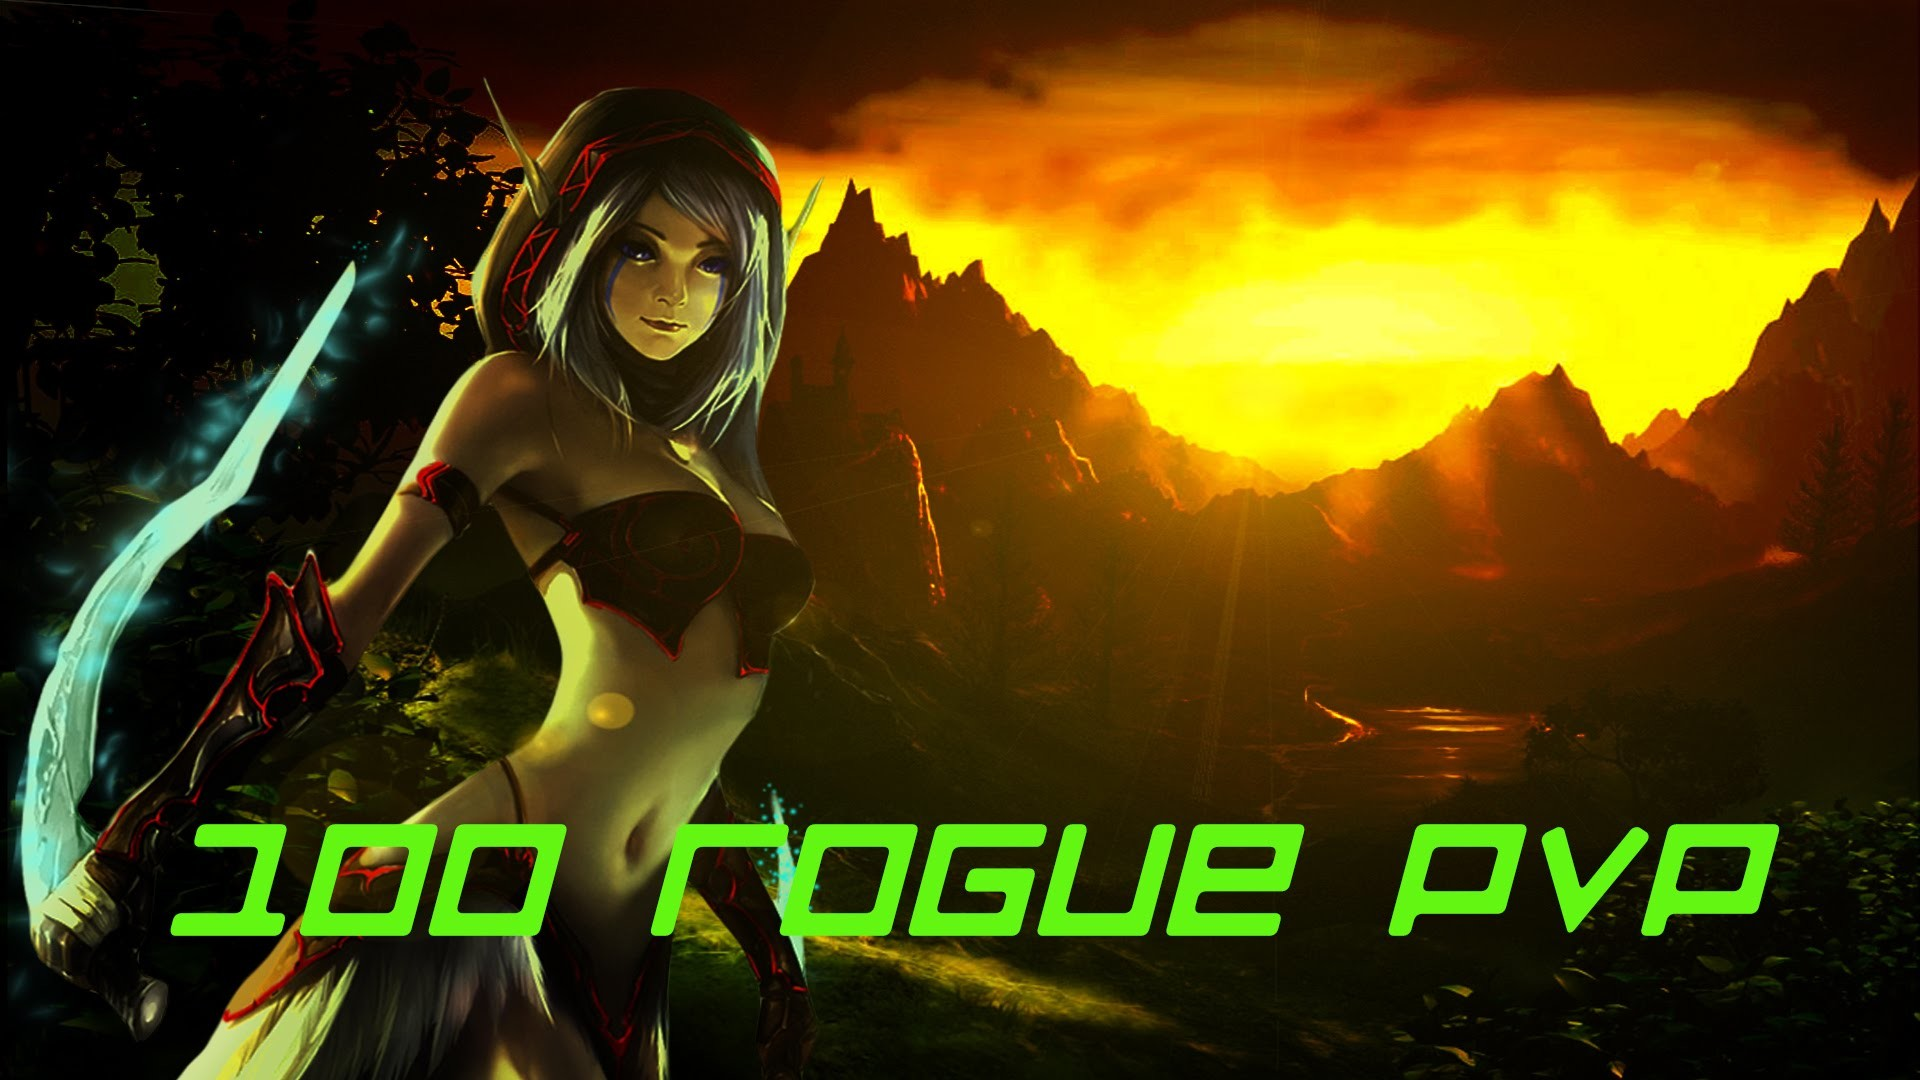 1920x1080 186 best rogue images on Pinterest | Rogues, Fantasy art and Blood elf ...